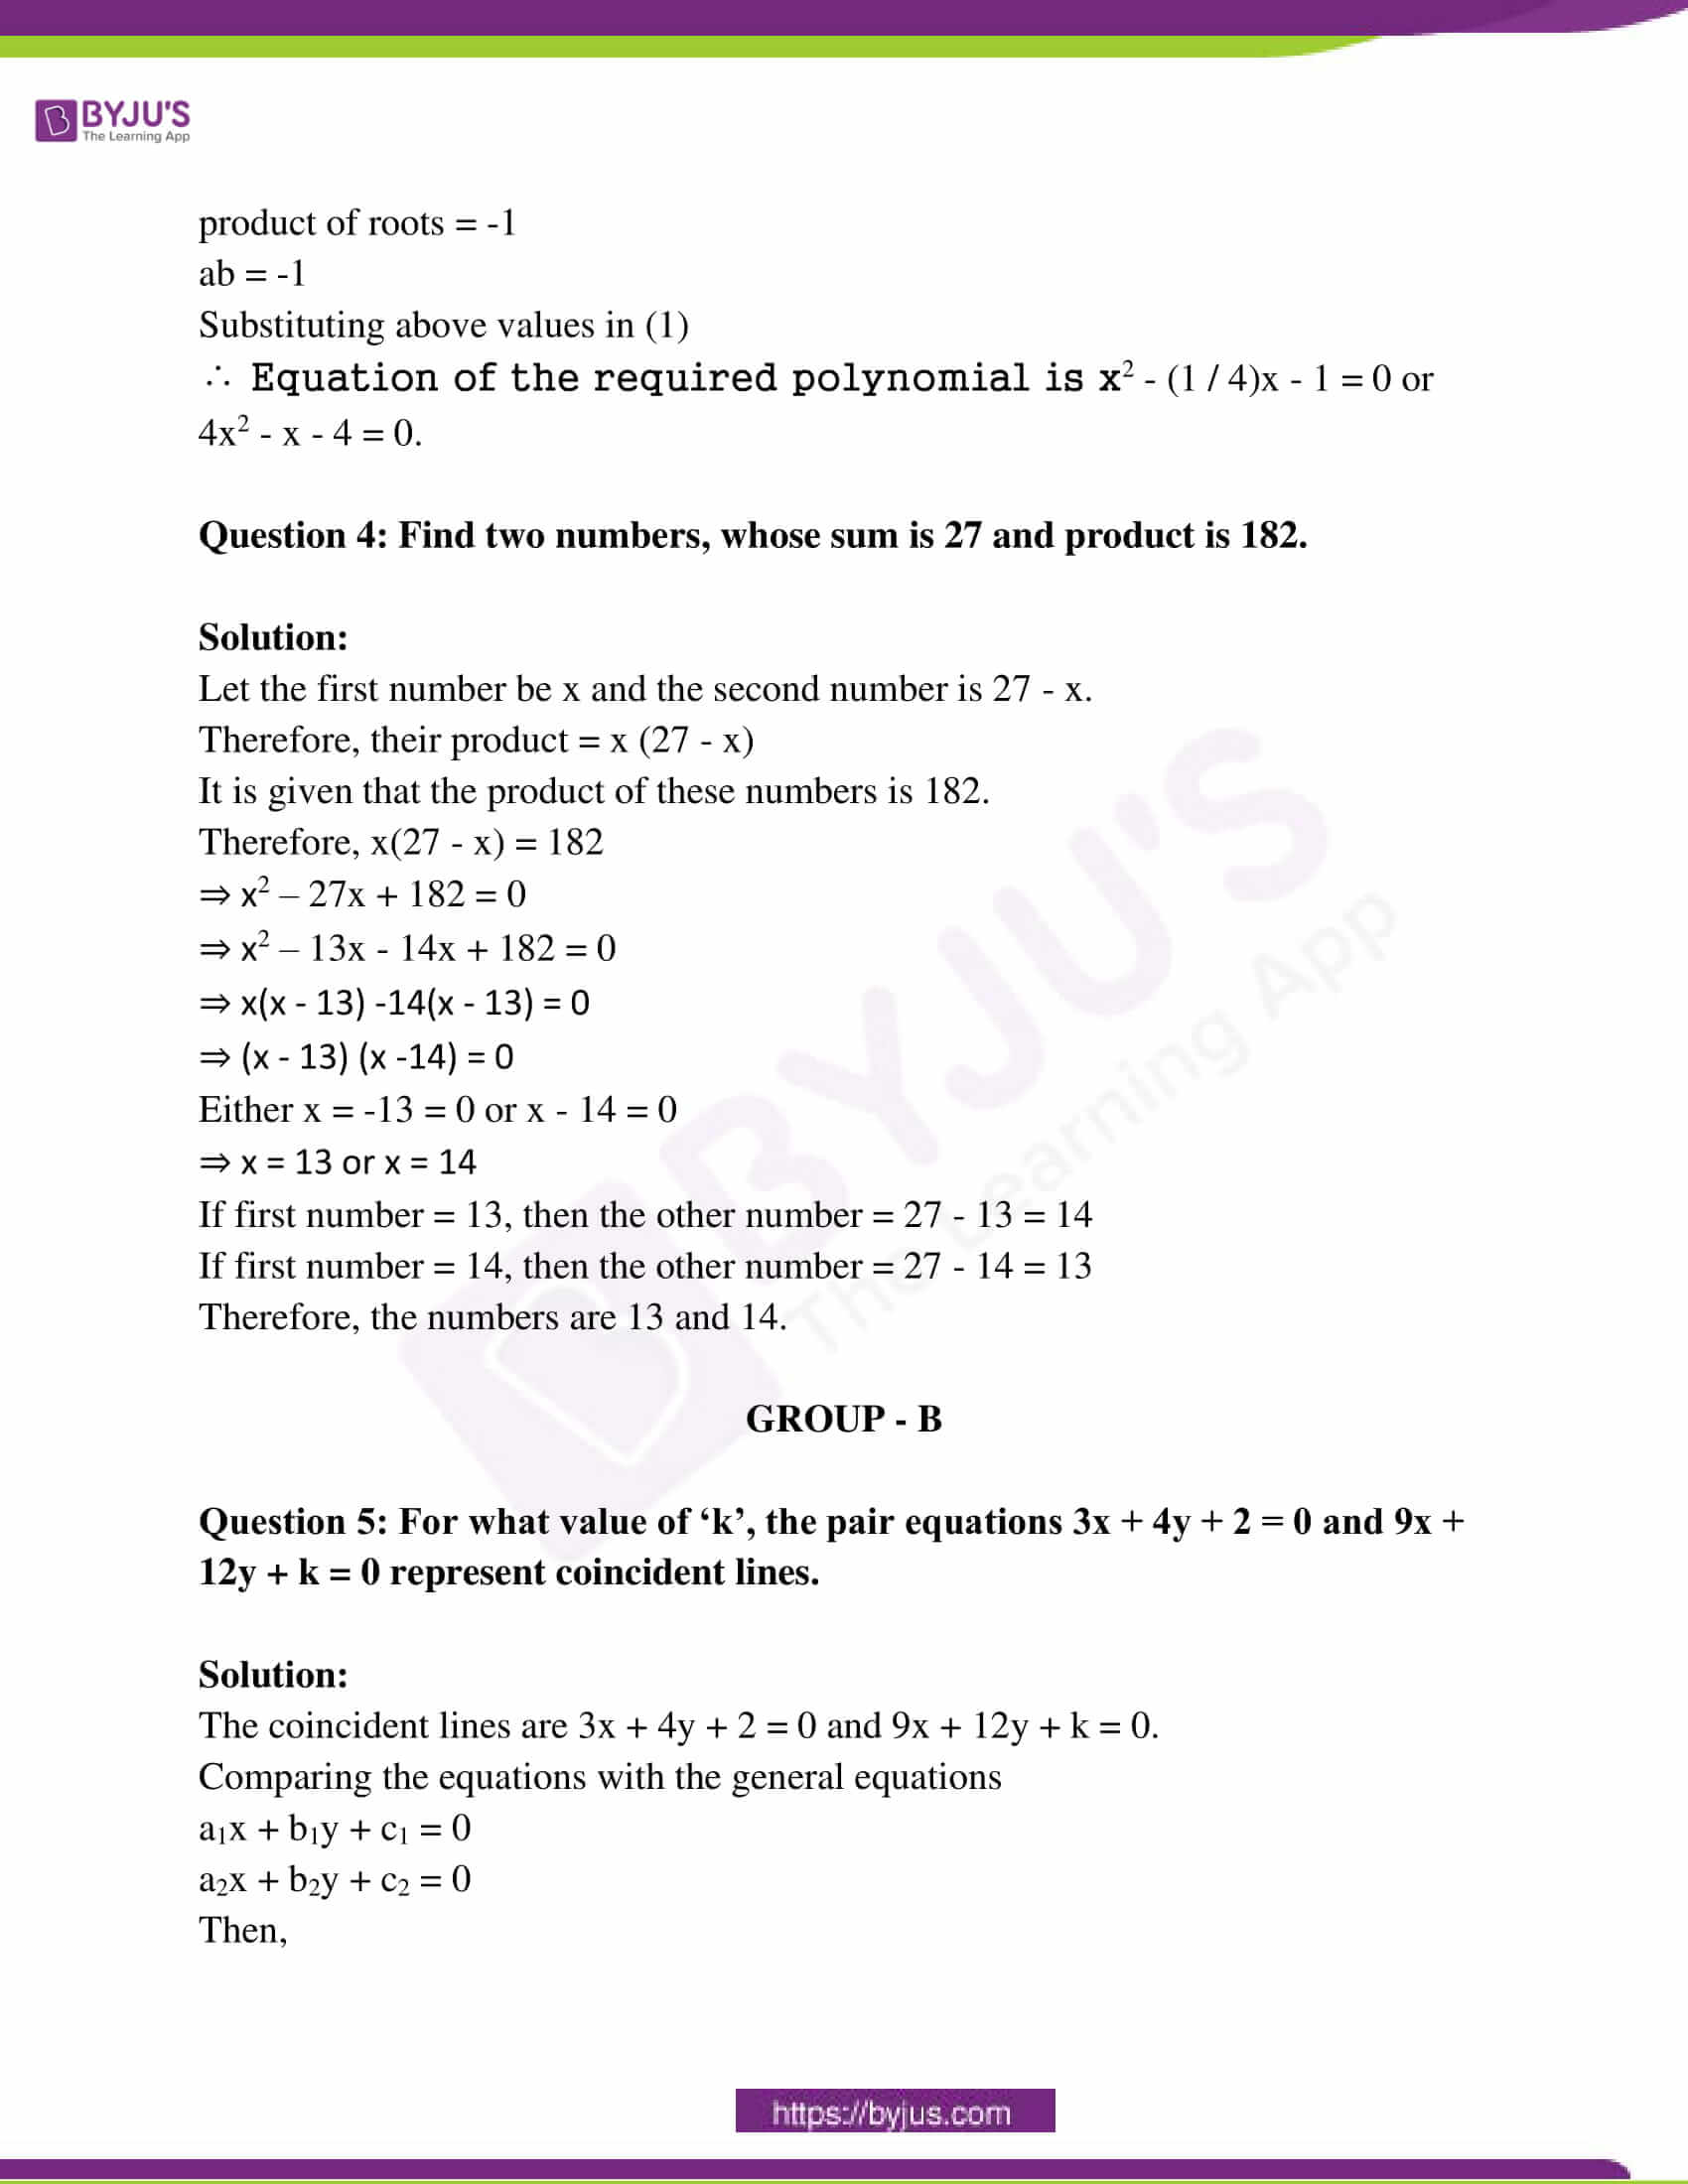 ap class 10 maths question paper 1 sol march 2015 03